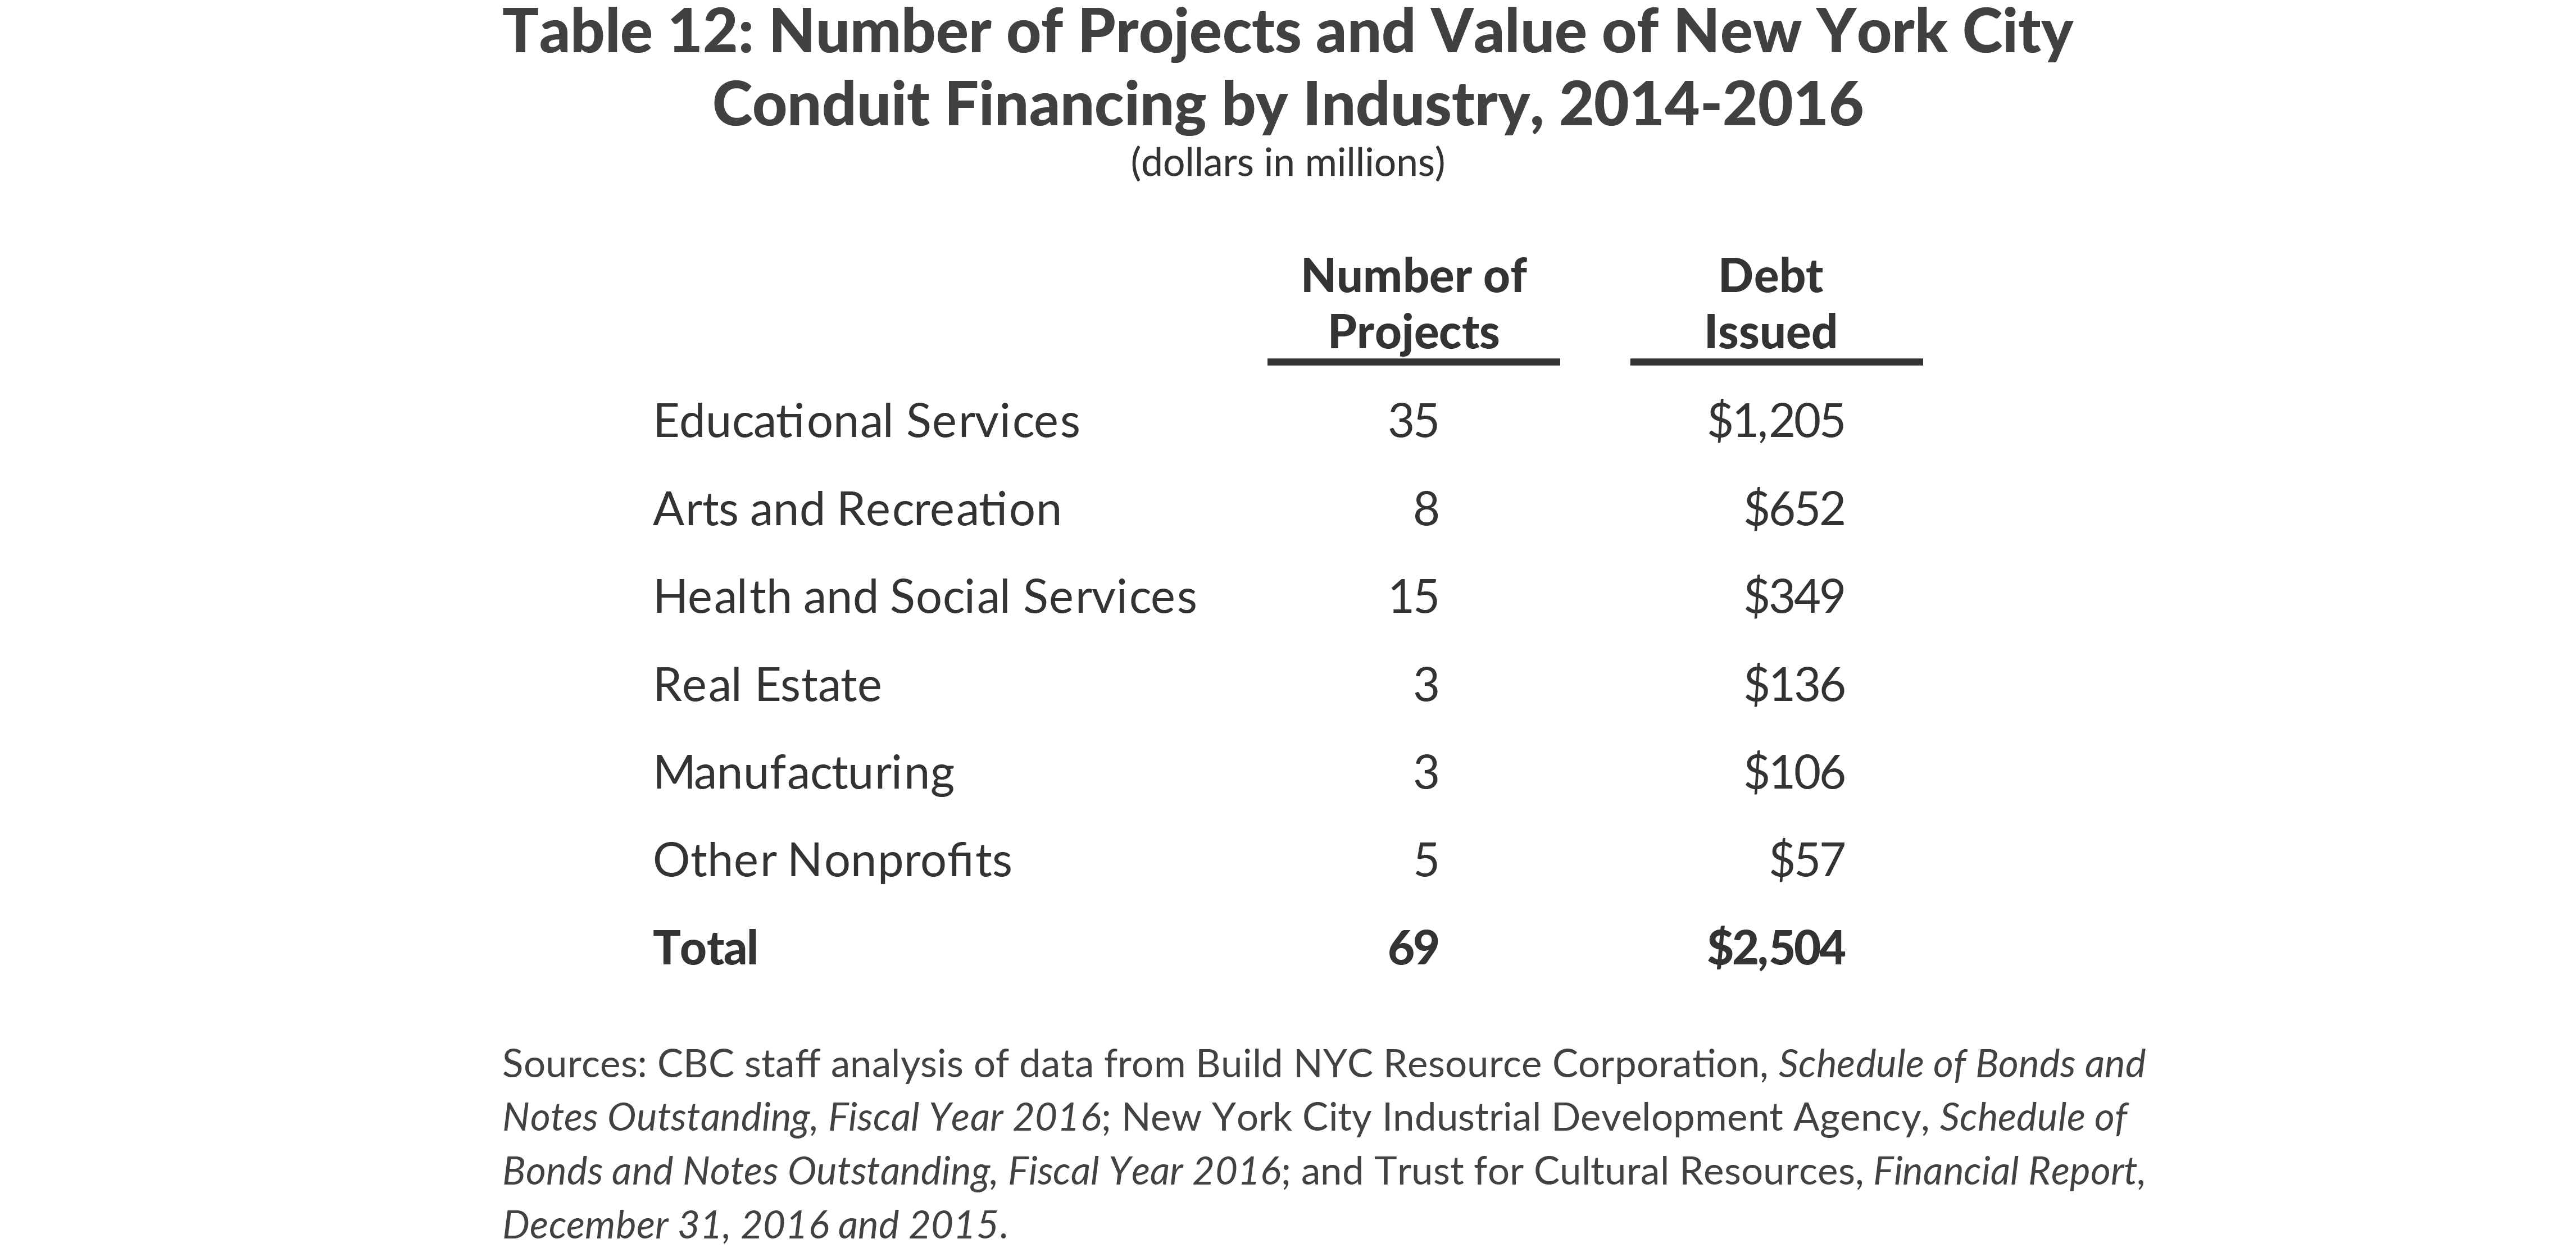 Number of Projects and Value of New York City Conduit Financing by Industry